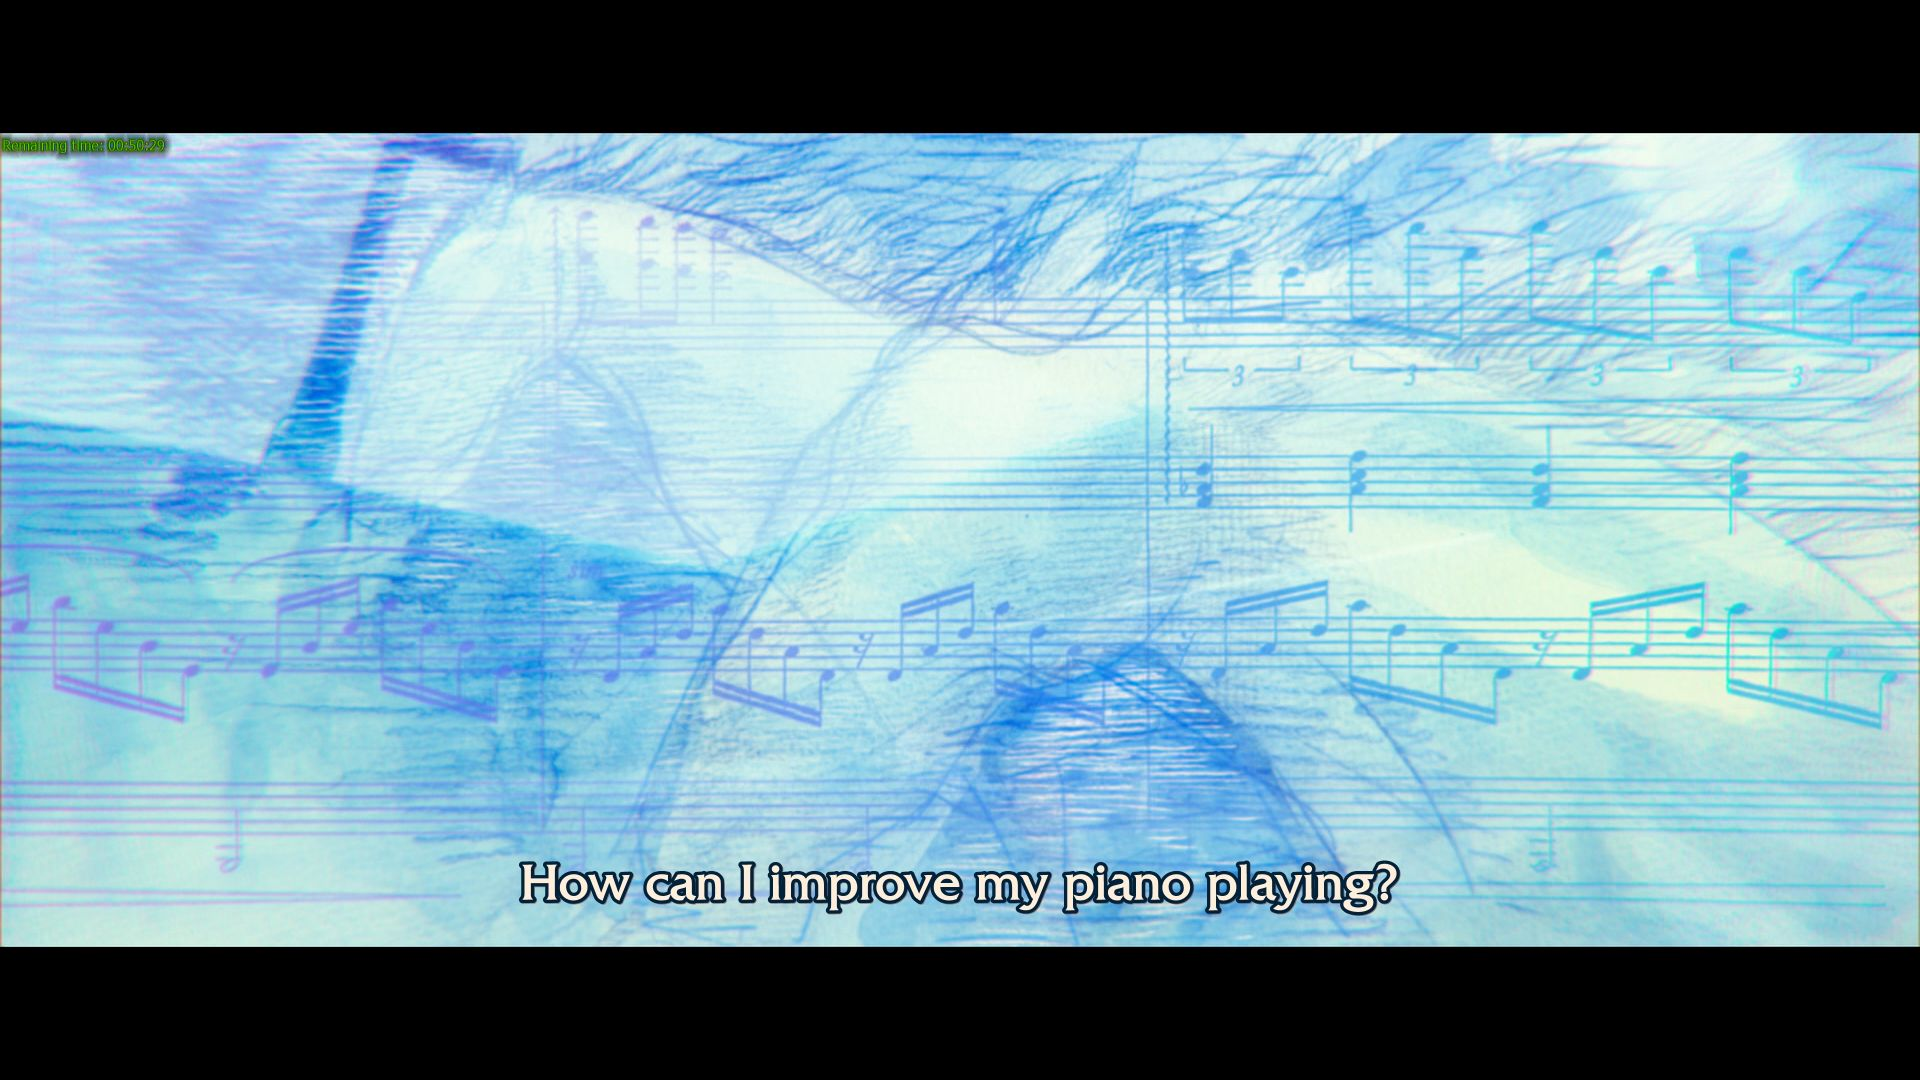 An uncomfortable amount of air time is spent on Shinji's struggles with the piano.